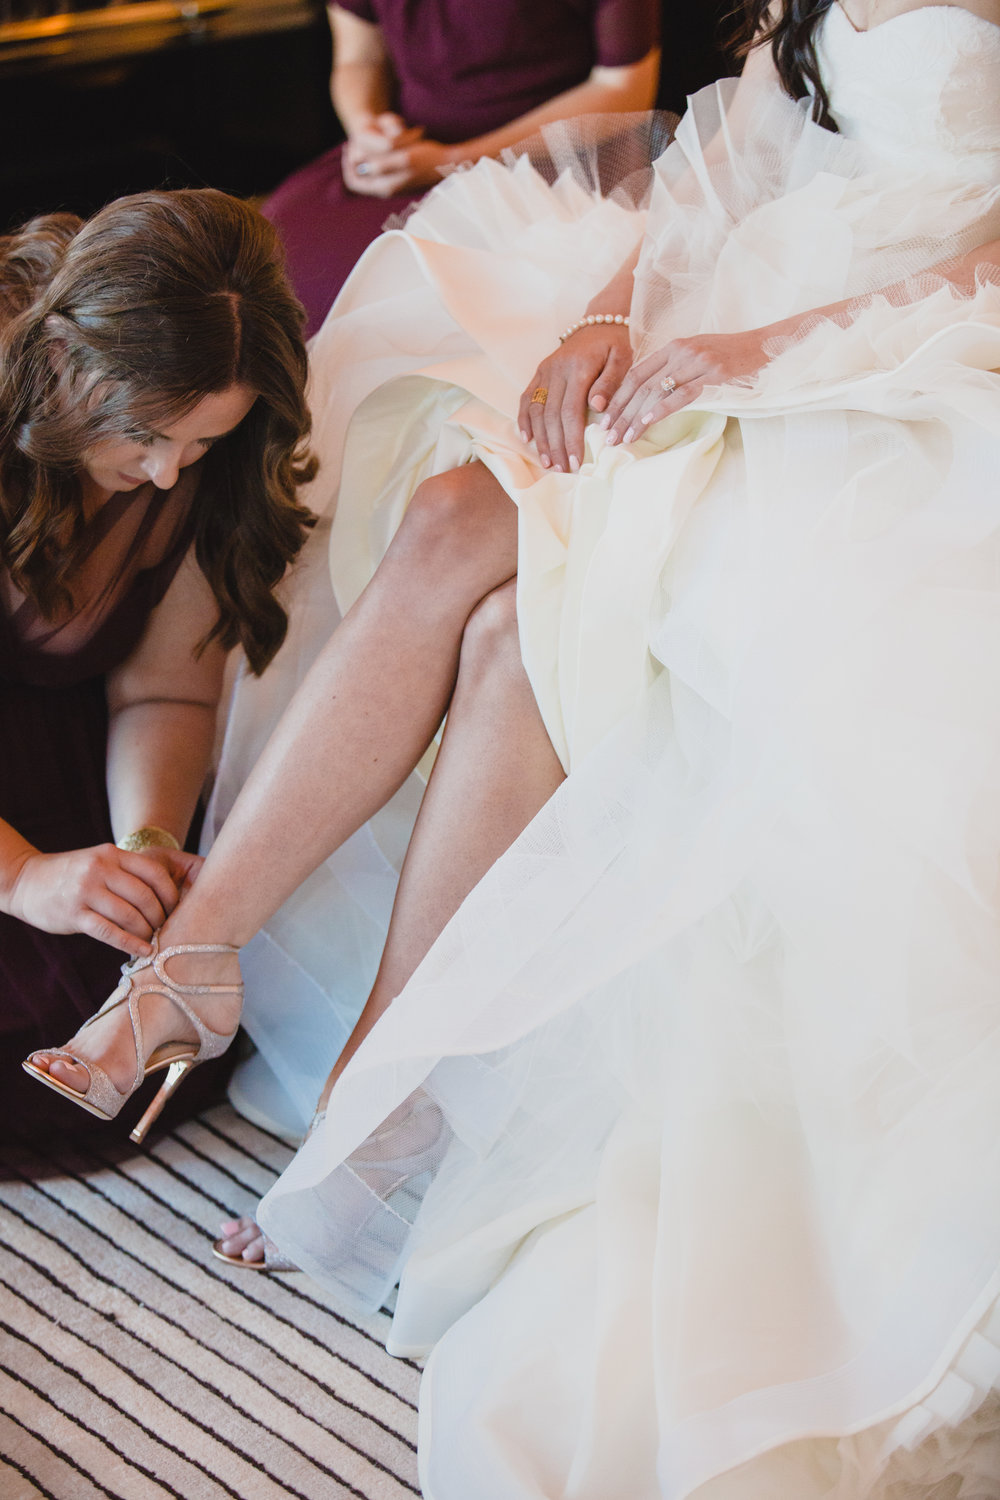 Putting on Jimmy Choo Wedding Shoes.  Luxury wedding at the Mandarin Oriental with a color scheme of white, blush, and pops of wine red produced by Las Vegas Wedding Planner Andrea Eppolito with photos by Stephen Salazar Photography.